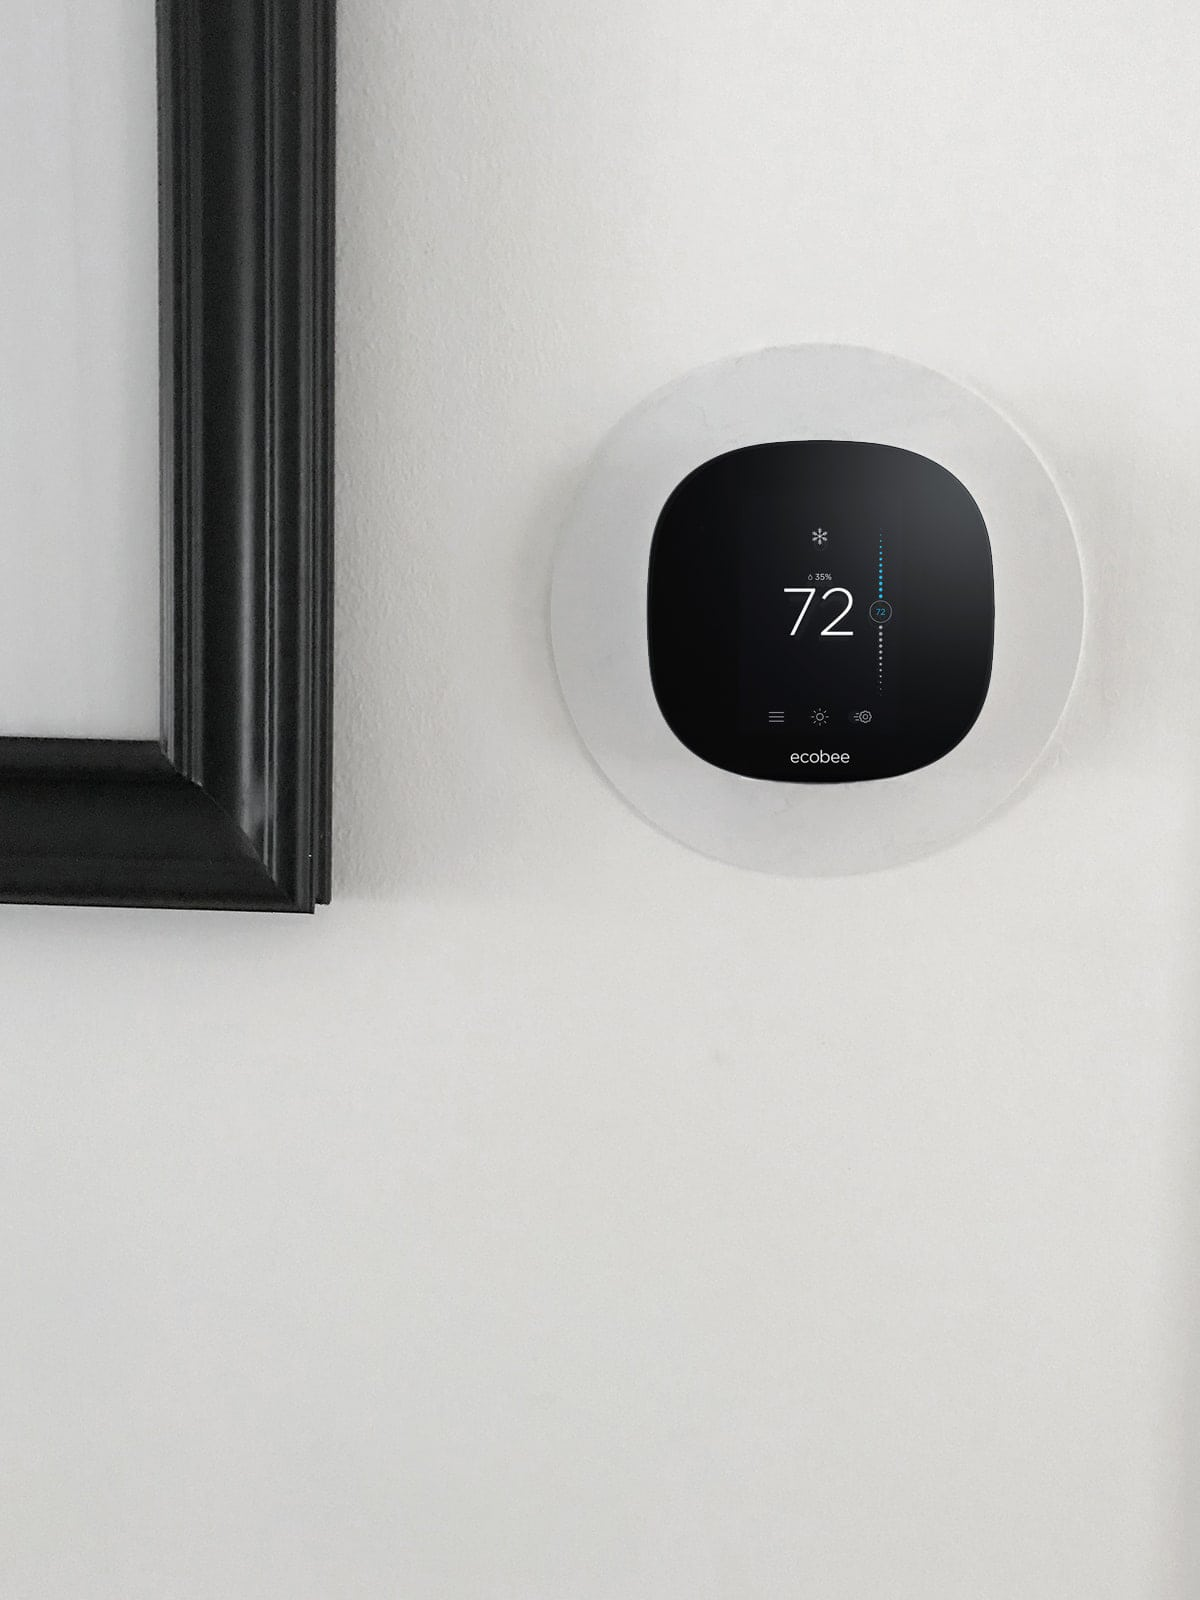 ecobee3 lite hanging on the wall in black and white home